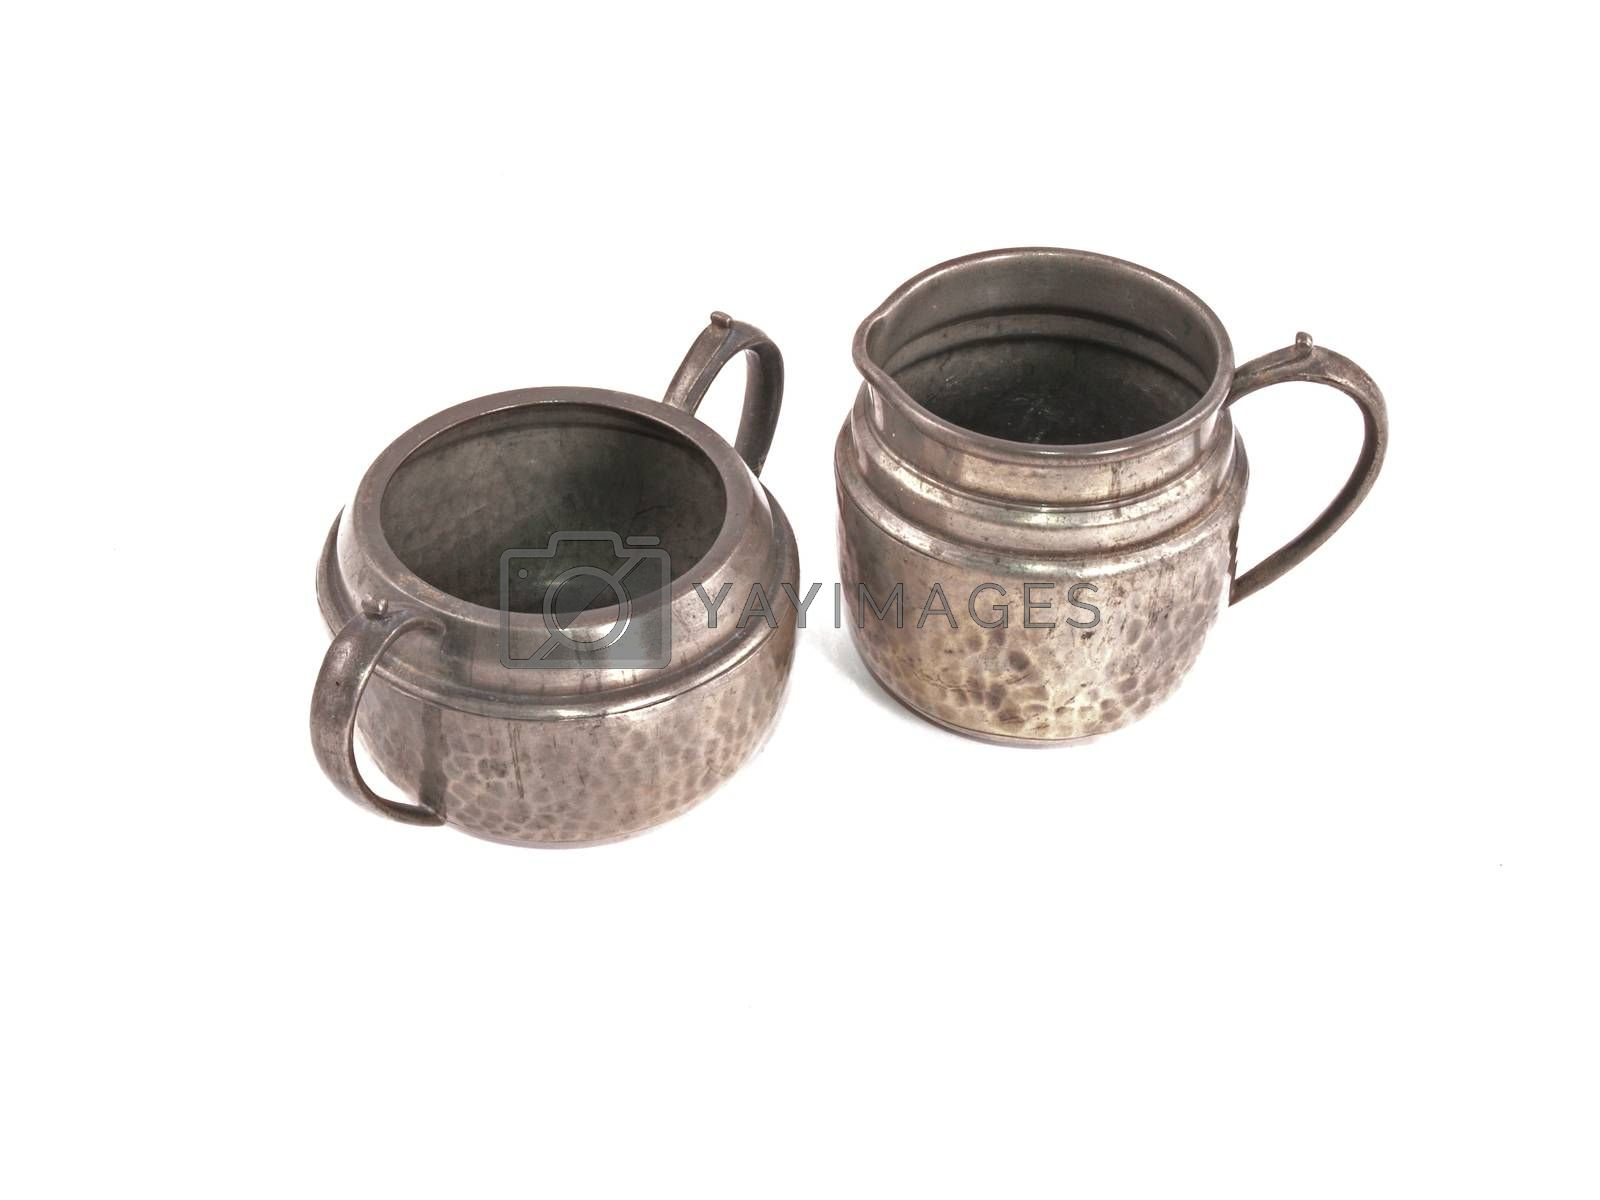 Pewter sugar bowl and milk jug on a white background.